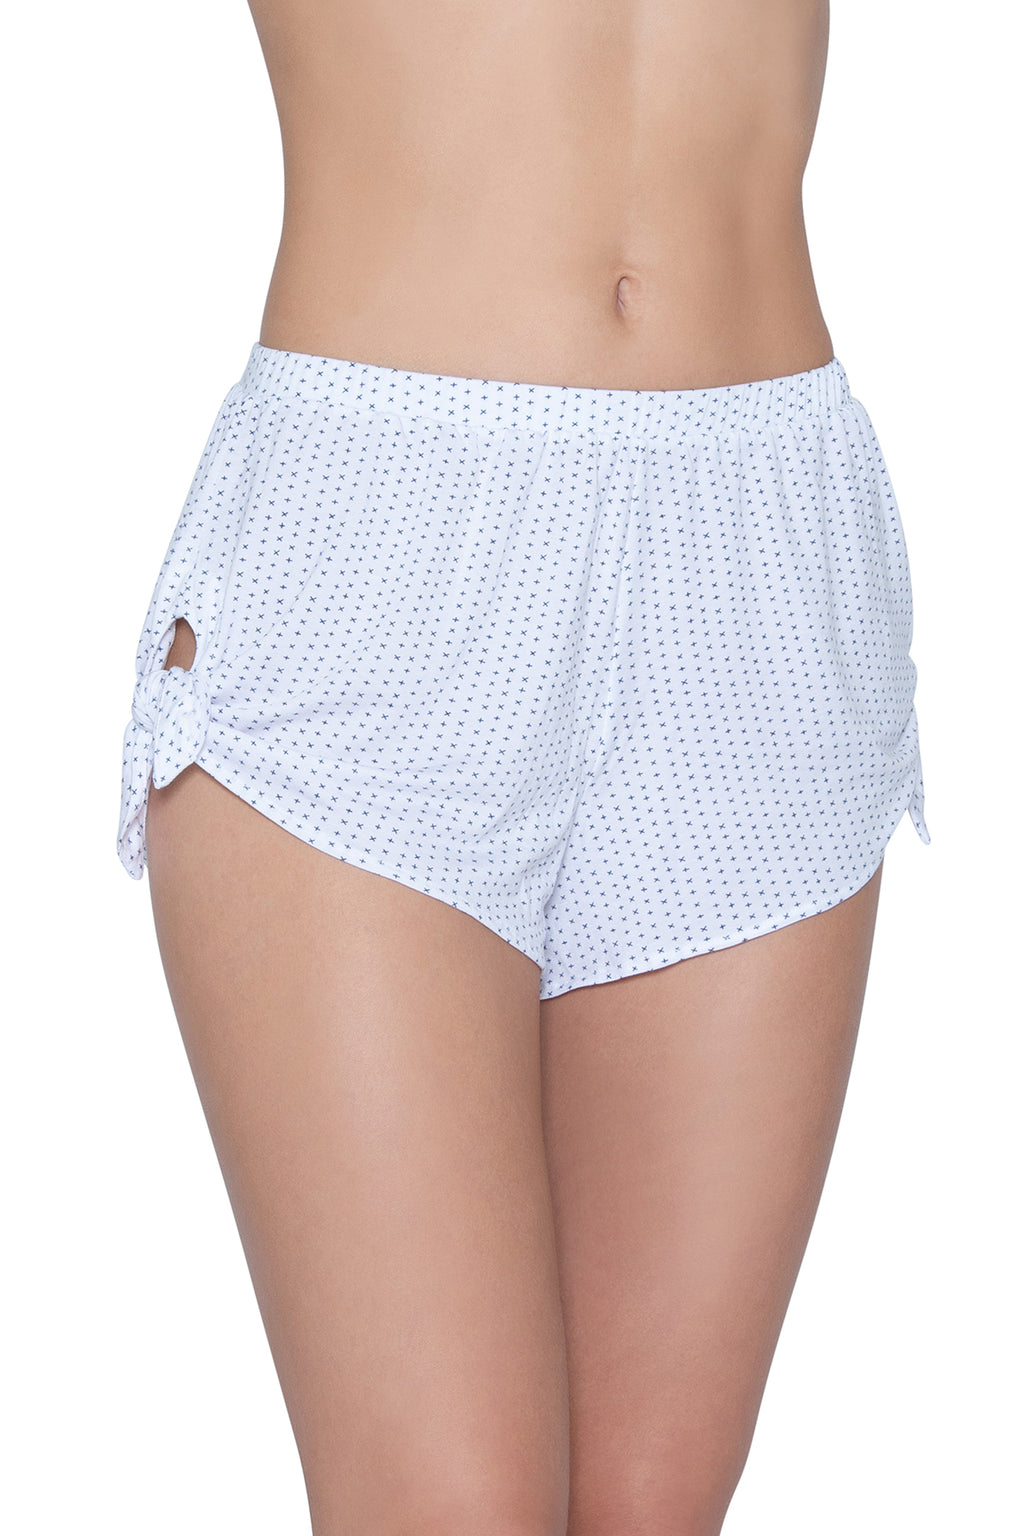 Eberjey Tropea Knotted Shorts - White